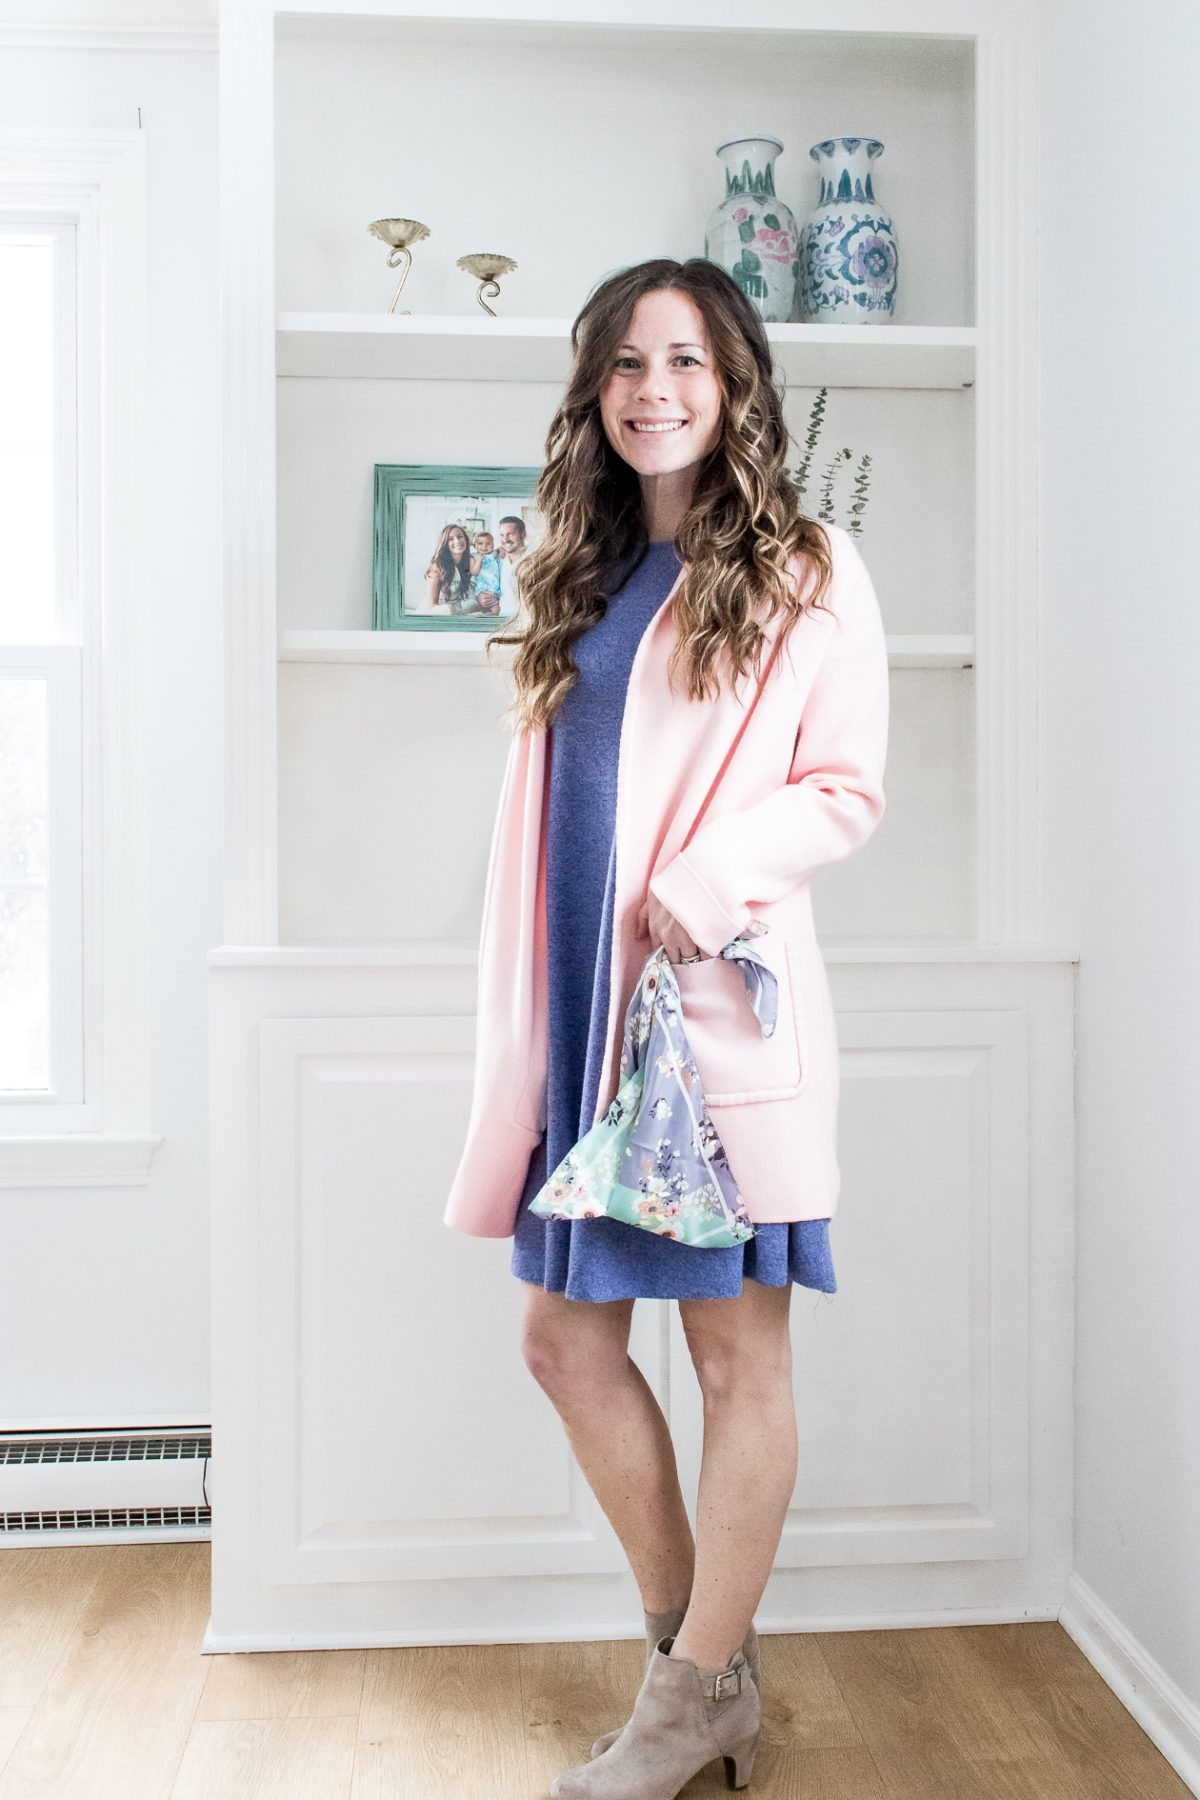 Smiling woman in pink sweater and blue dress